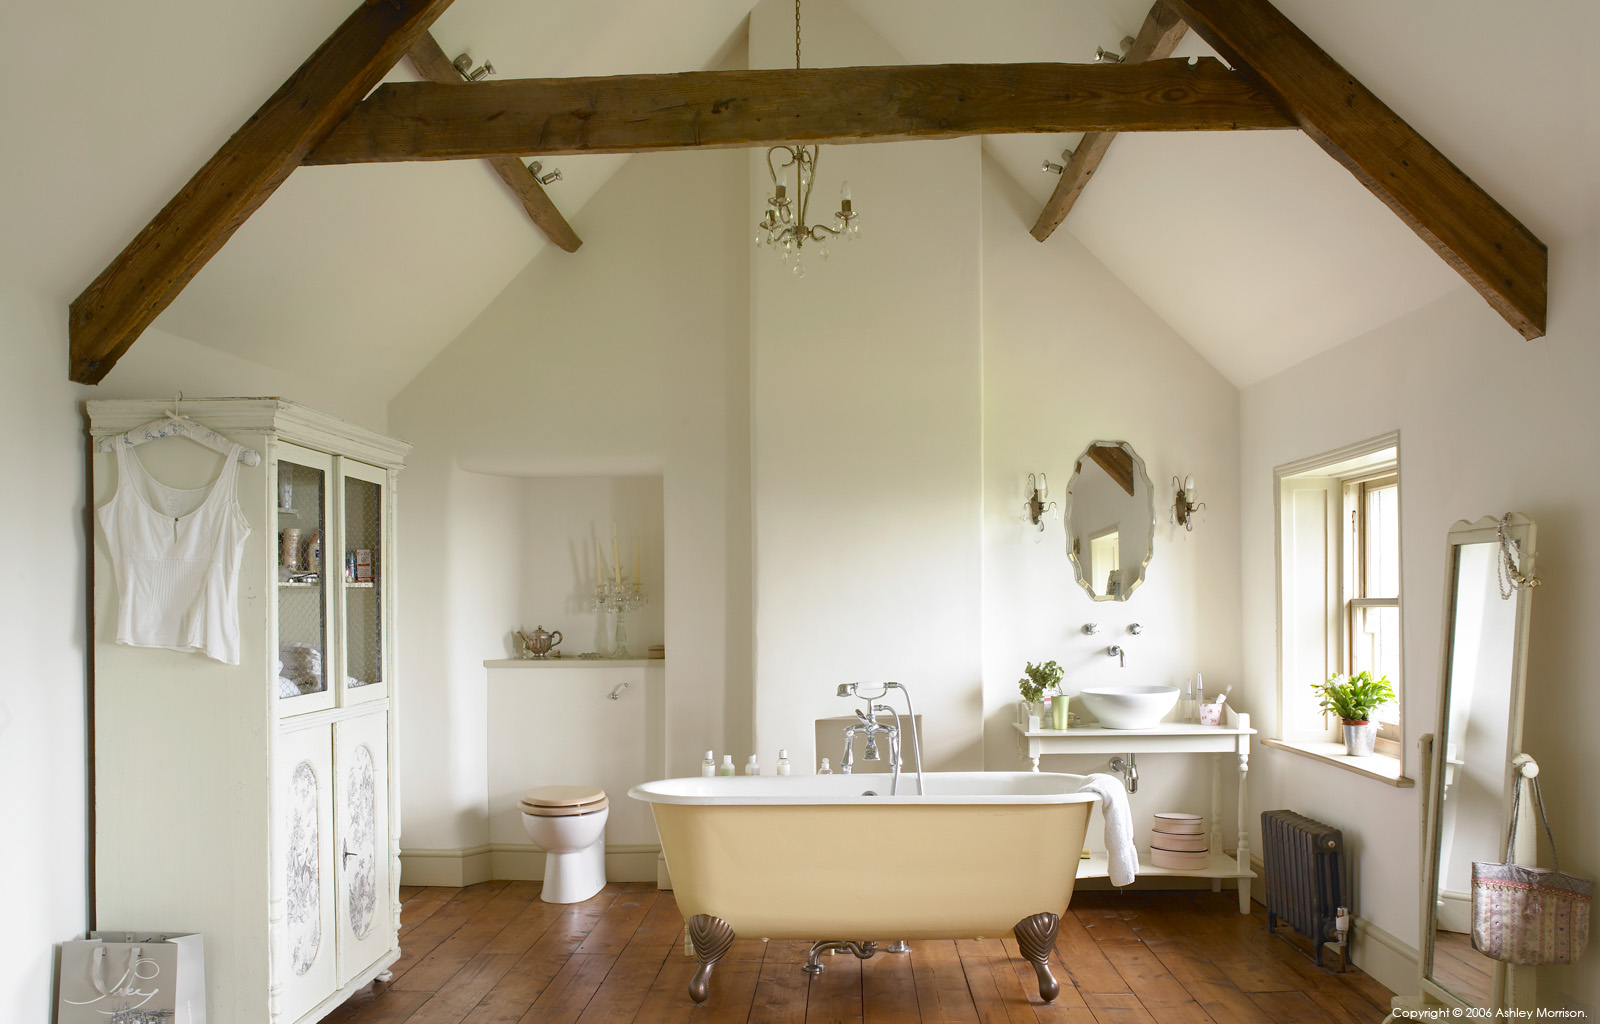 Bathroom in Julie-Christian Young's stone farmhouse near Bath by Ashley Morrison.